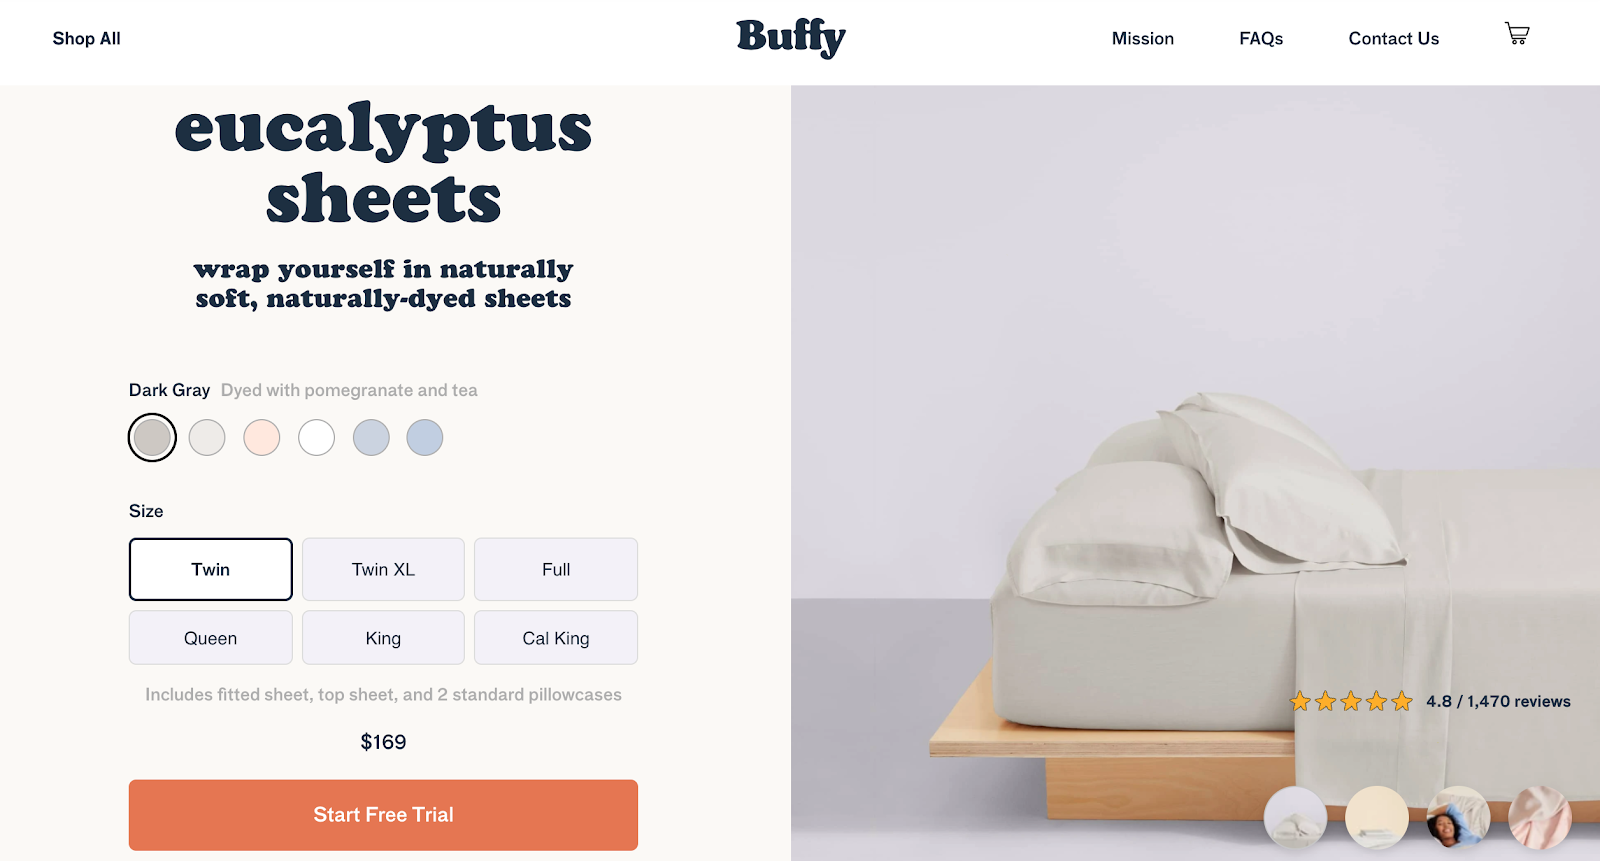 best product detail page examples buffy